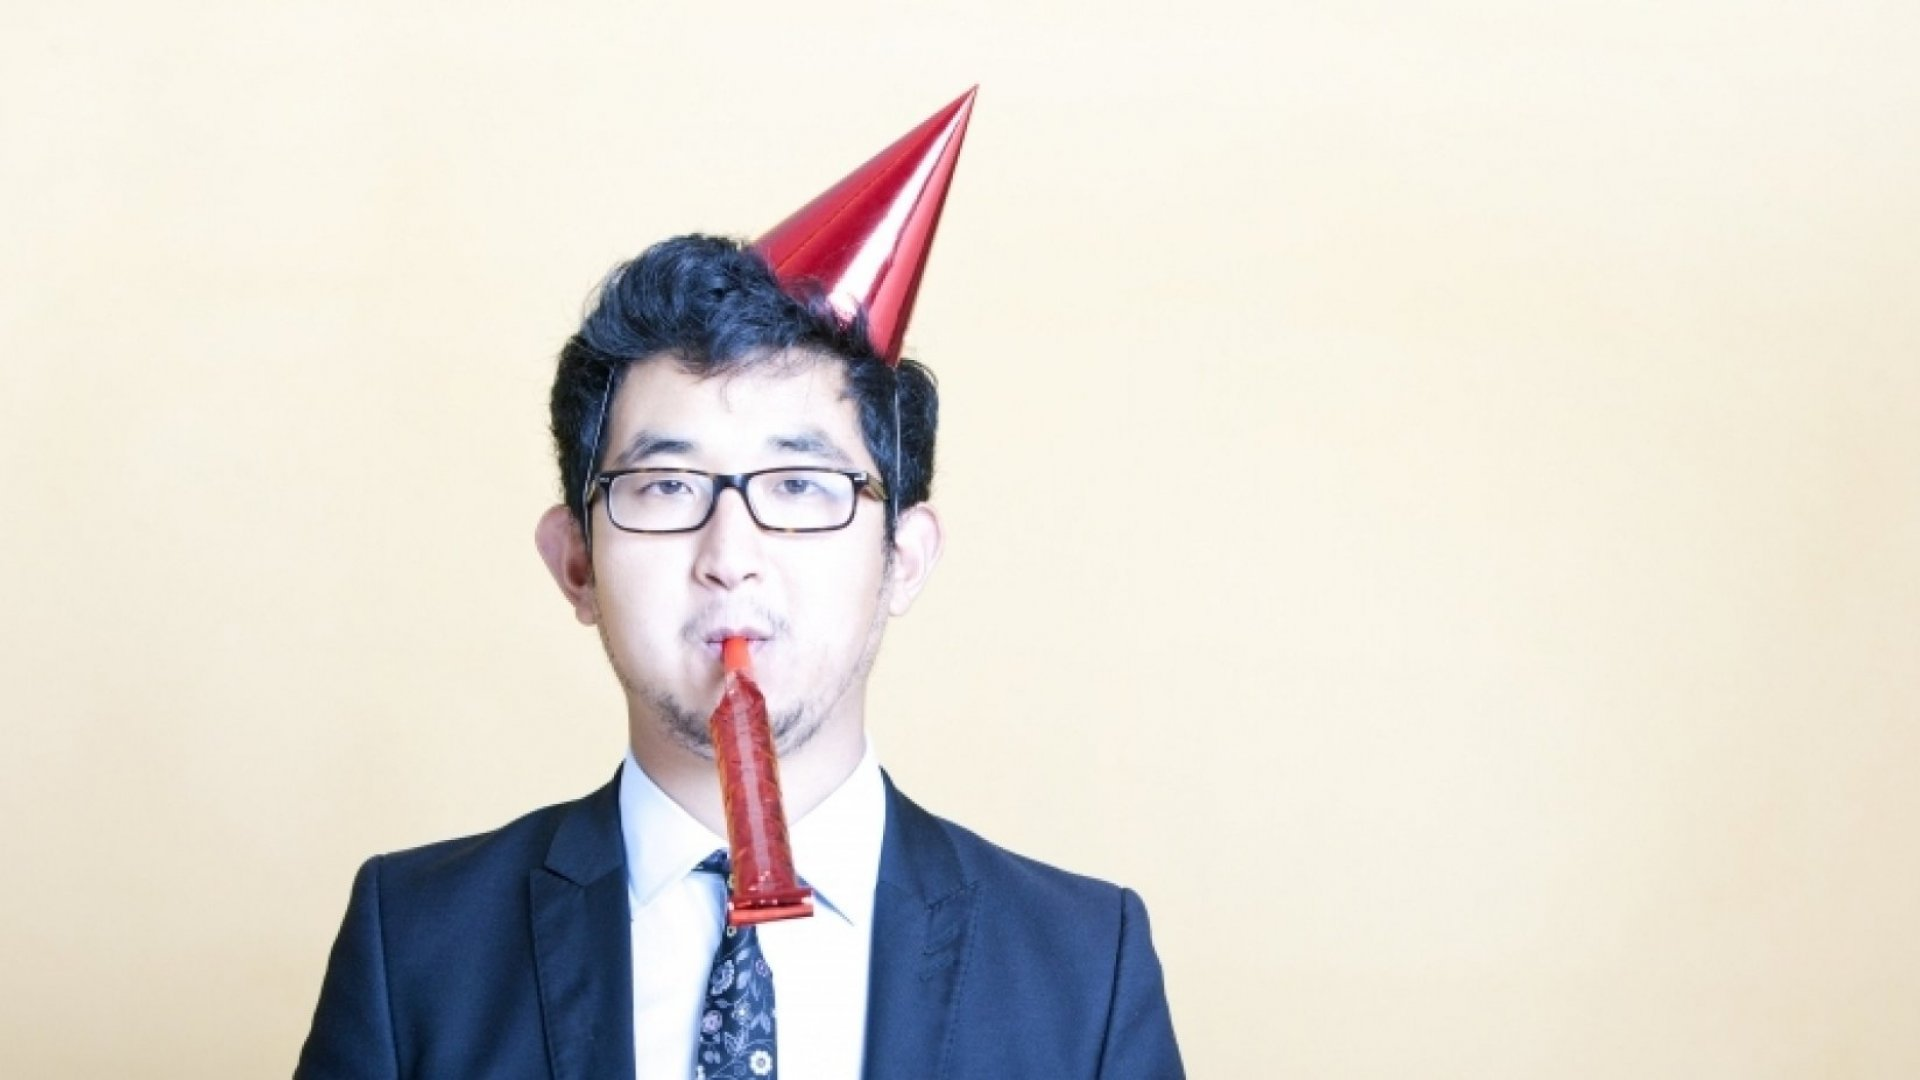 If You're an Introvert, Here's How to Survive Your Next Work Party